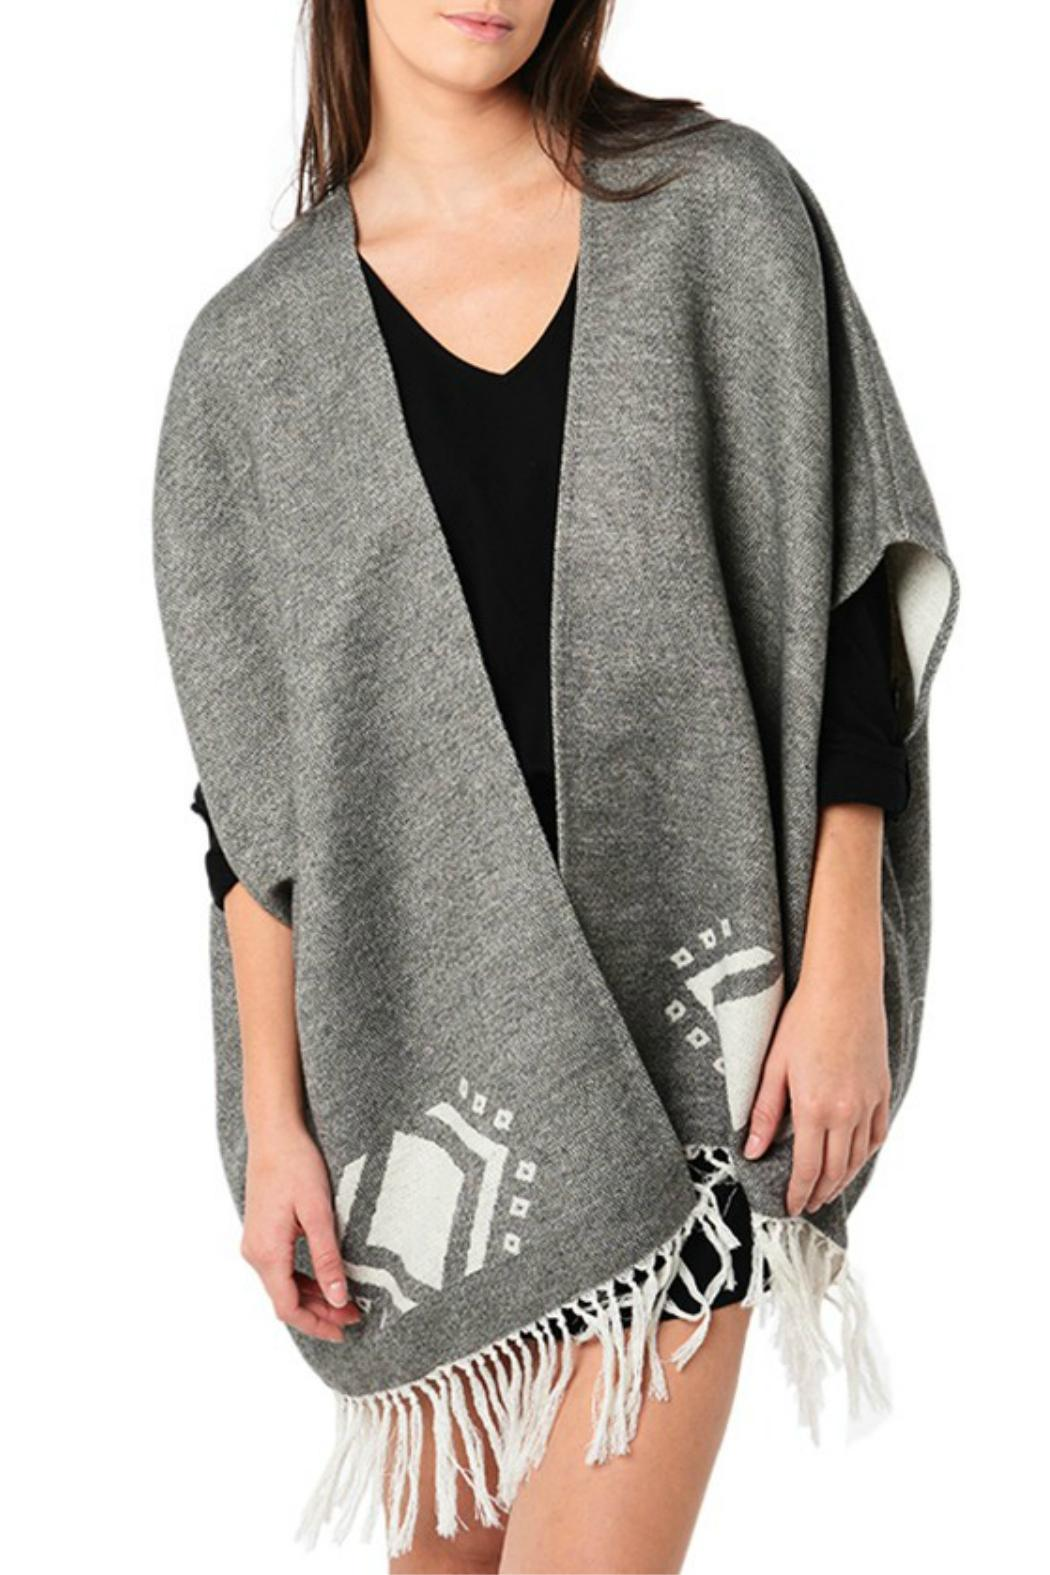 Image of: Cupcakes Cashmere Jordy Blanket Poncho From Canada By Blue Sky Fashions Lingerie Shoptiques